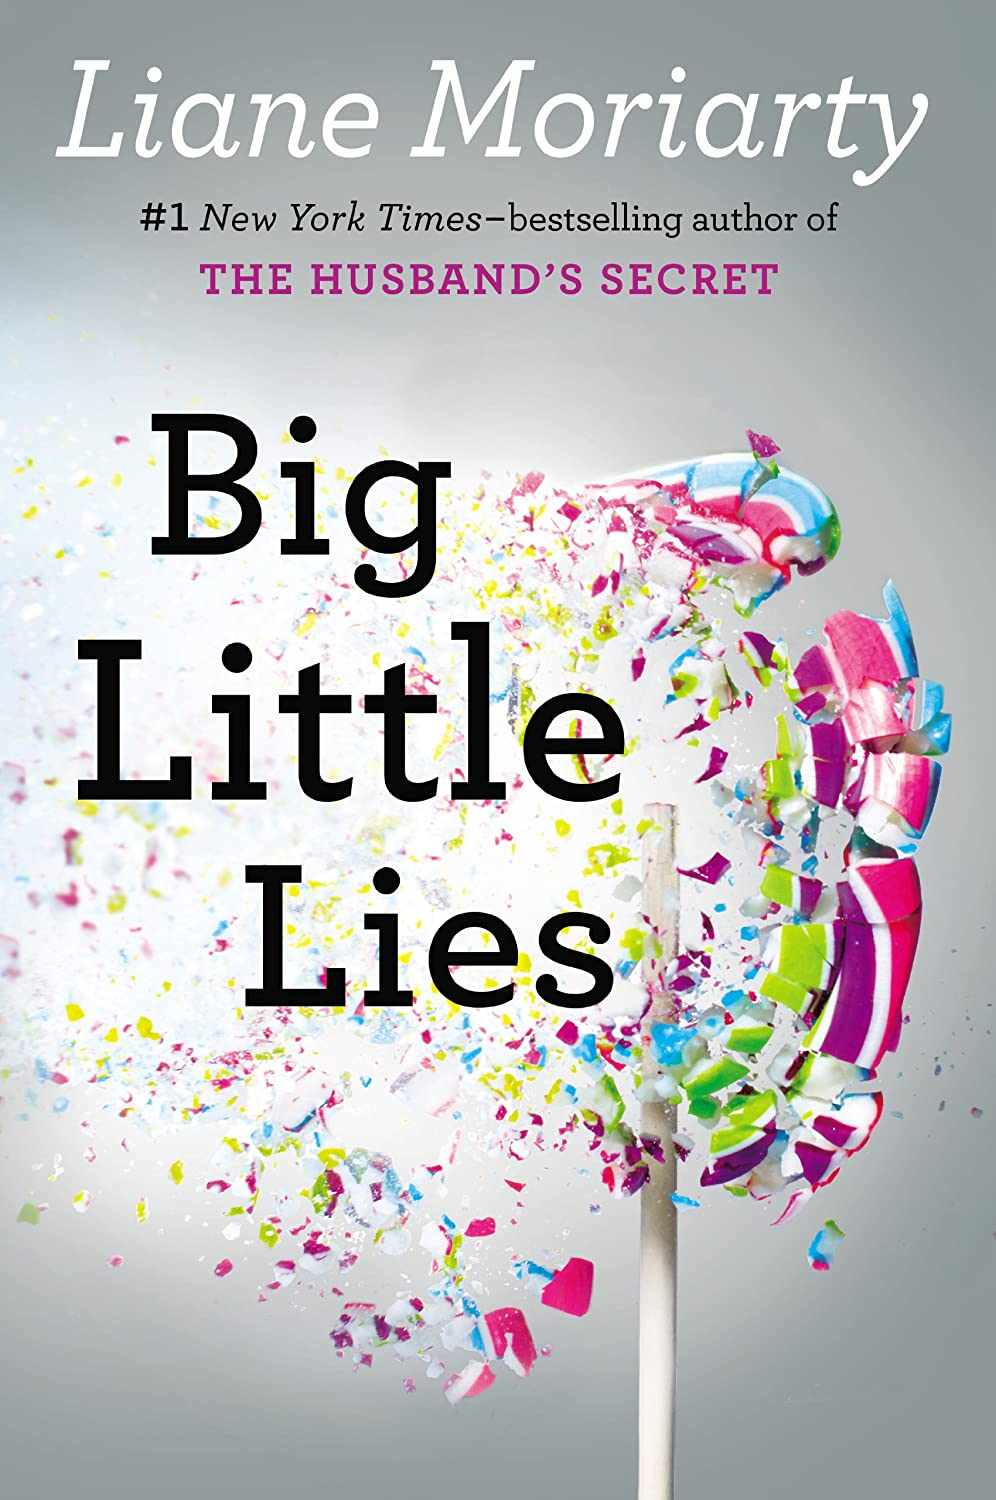 http://www.amazon.com/Big-Little-Lies-Liane-Moriarty/dp/0399167064/ref=sr_1_1?ie=UTF8&qid=1427457475&sr=8-1&keywords=big+little+lies